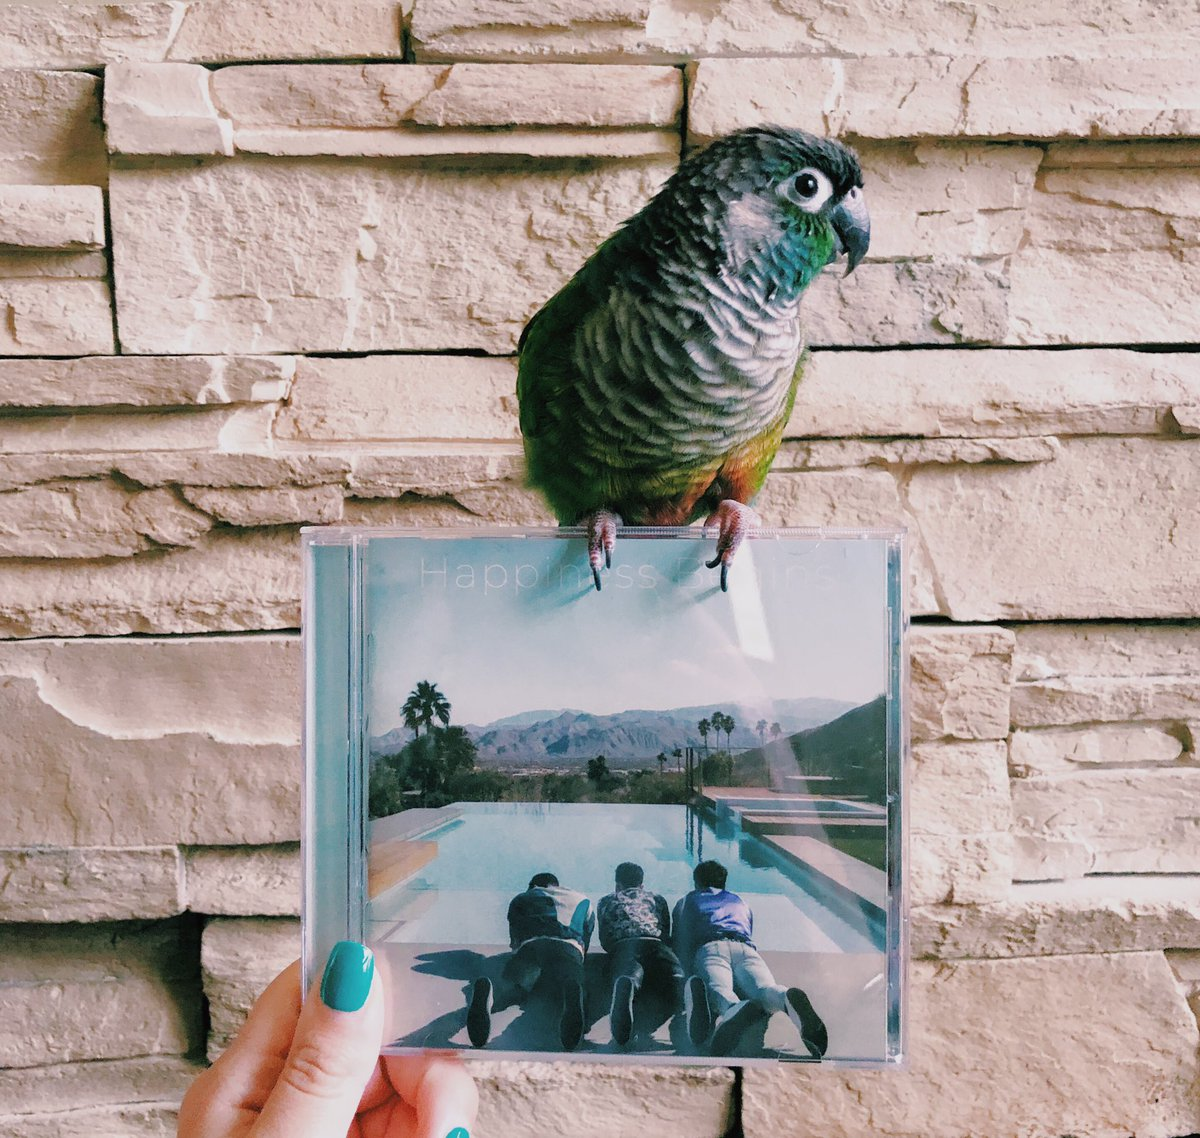 So happy to finally have a physical copy of #HappinessBegins! My bird, Maui, grew up listening to the @jonasbrothers, so he dances ~every single time~ their songs come on <br>http://pic.twitter.com/tFJfEvruYI